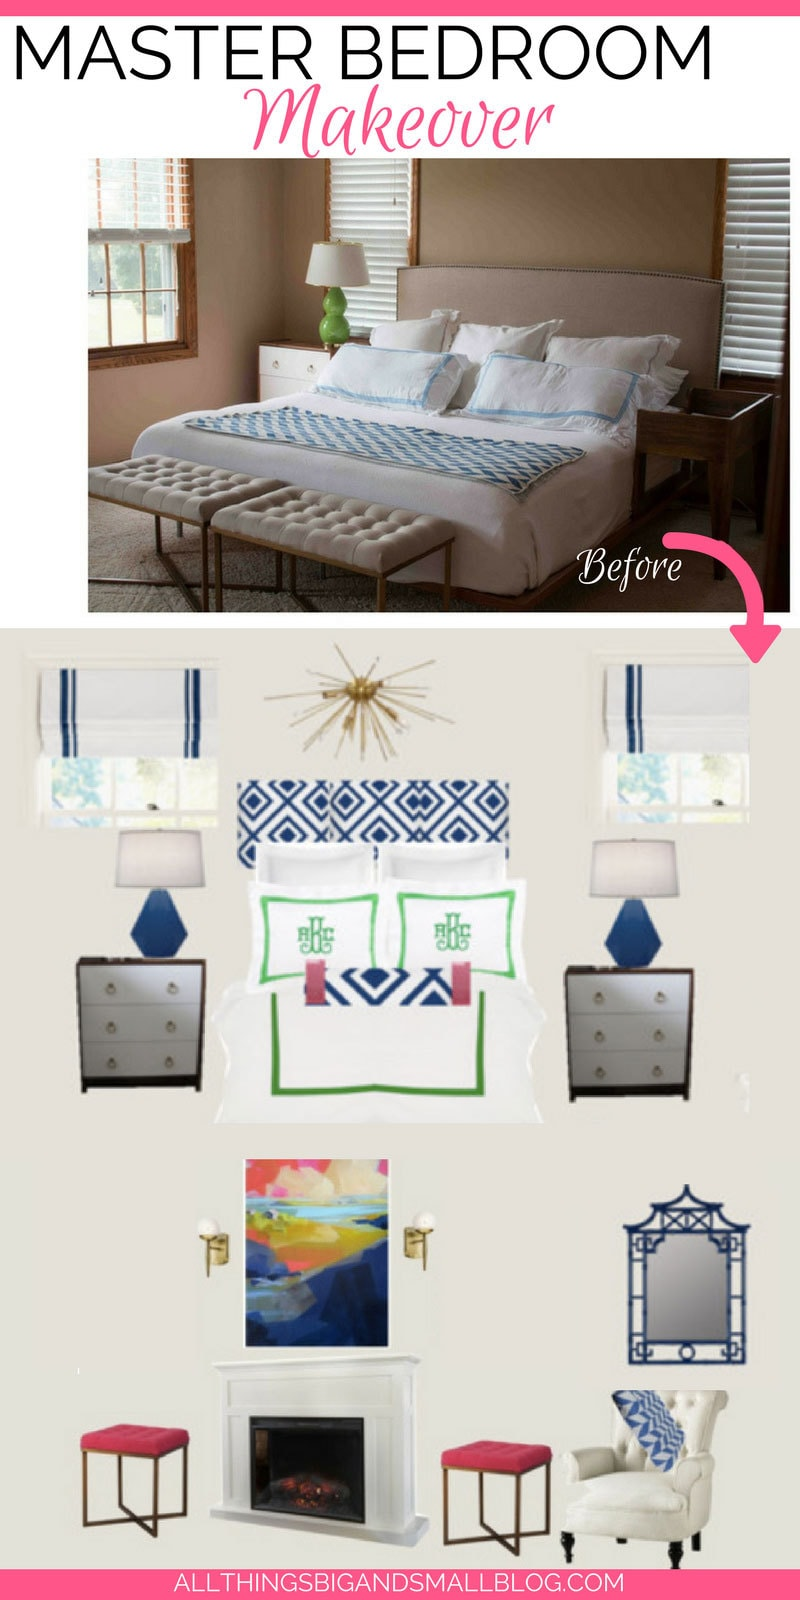 master bedroom makeover | AlL THINGS BIG AND SMALL